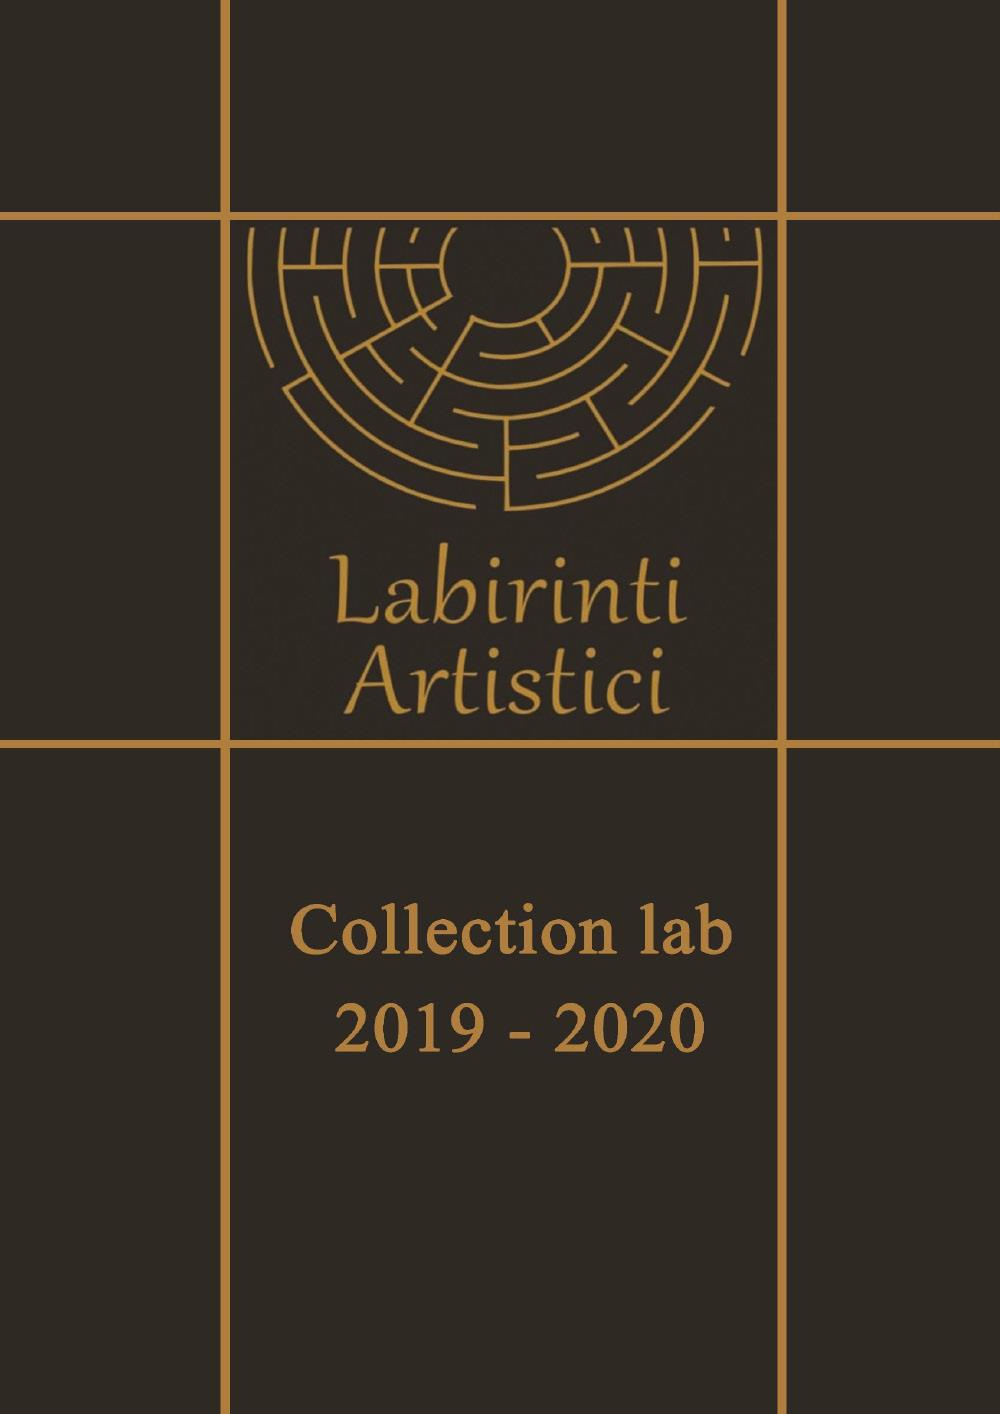 Collection 2019 - 2020